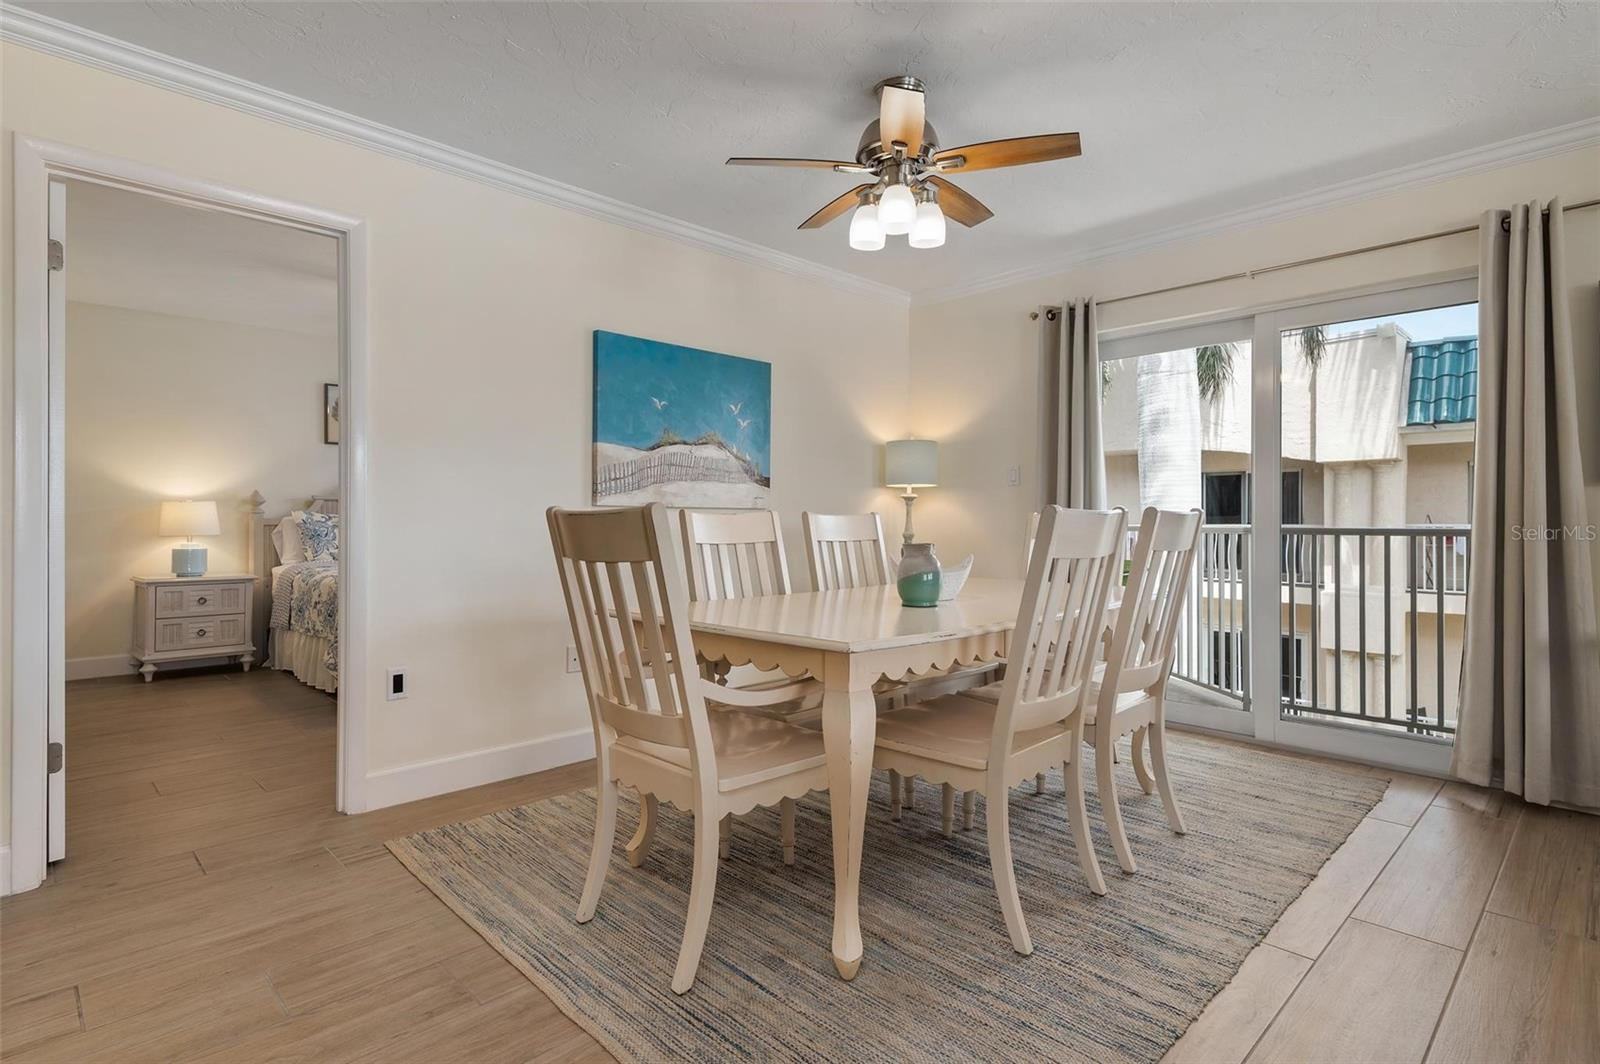 Condo for sale at 5963 Midnight Pass Rd #332, Sarasota, FL 34242 - MLS Number is A4498366